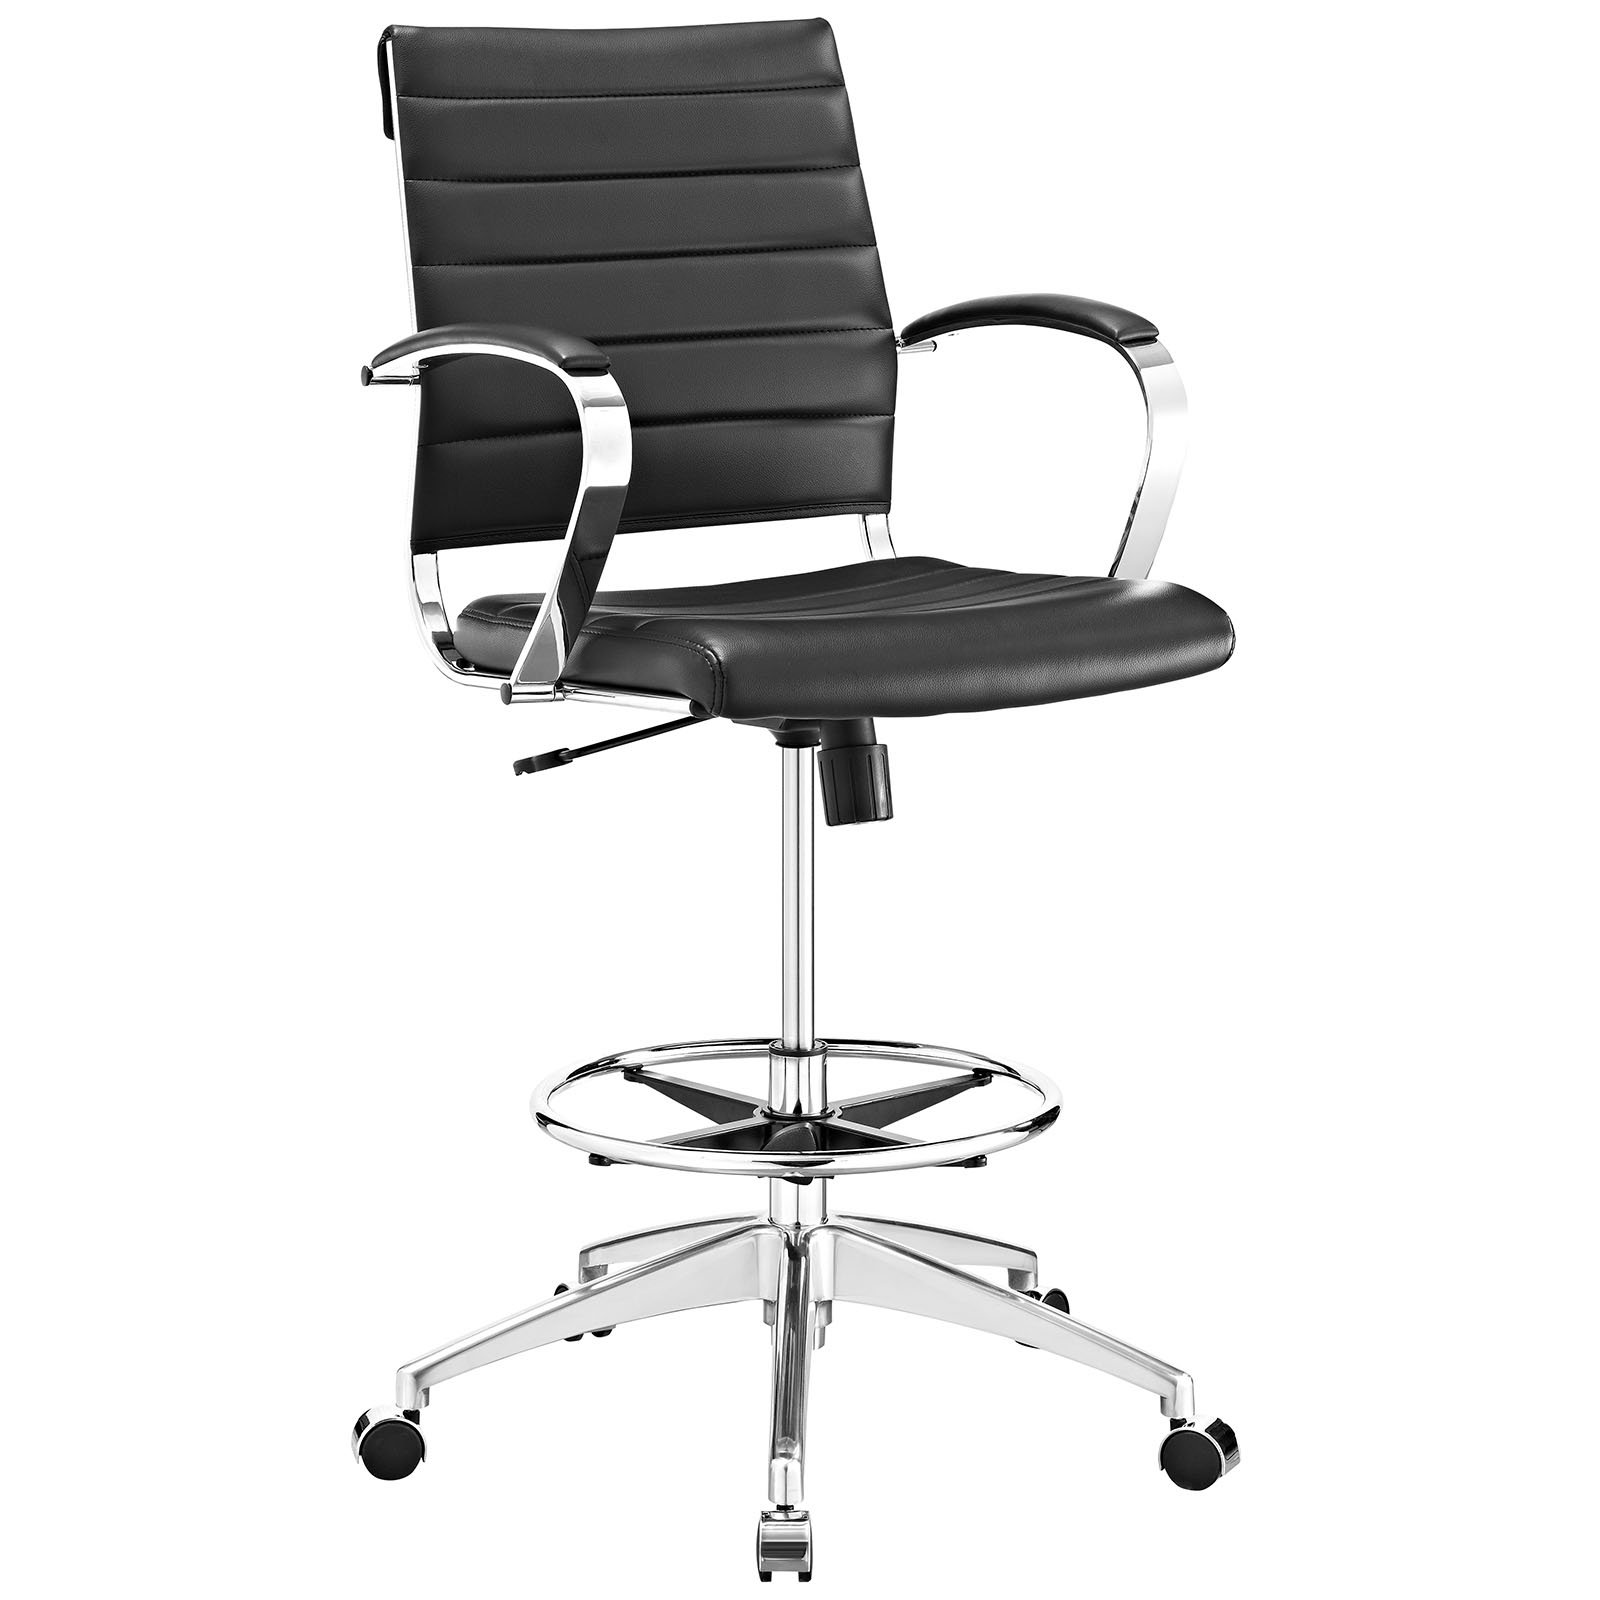 Modway Jive Drafting Chair In Black - Reception Desk Chair - Tall Office Chair For Adjustable Standing Desks - Counter Height Swivel Stool by Modway (Image #1)